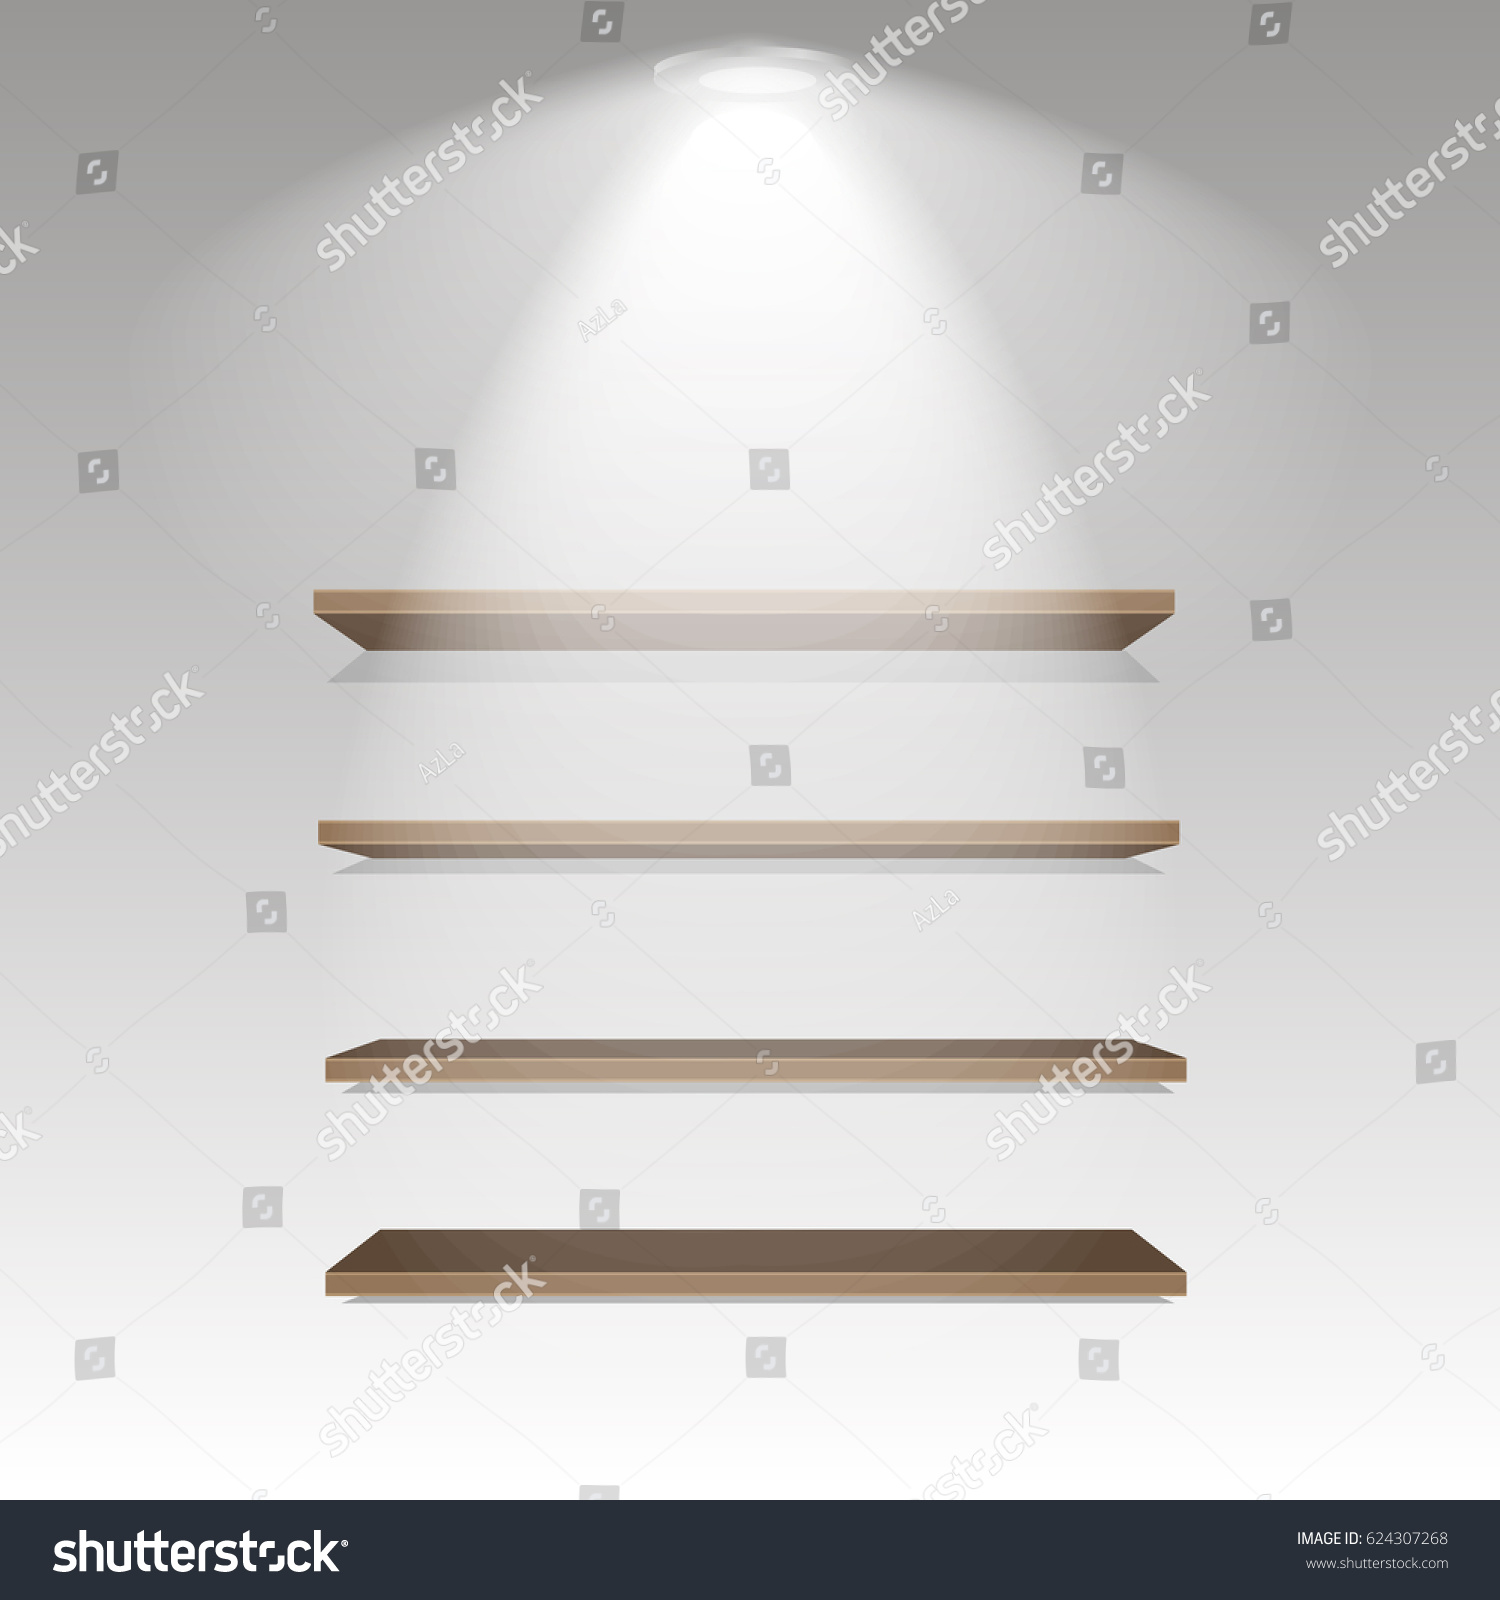 Wooden shelves on grey wall illuminated stock vector 624307268 wooden shelves on grey wall with illuminated lamp with soft light vector illustration amipublicfo Image collections